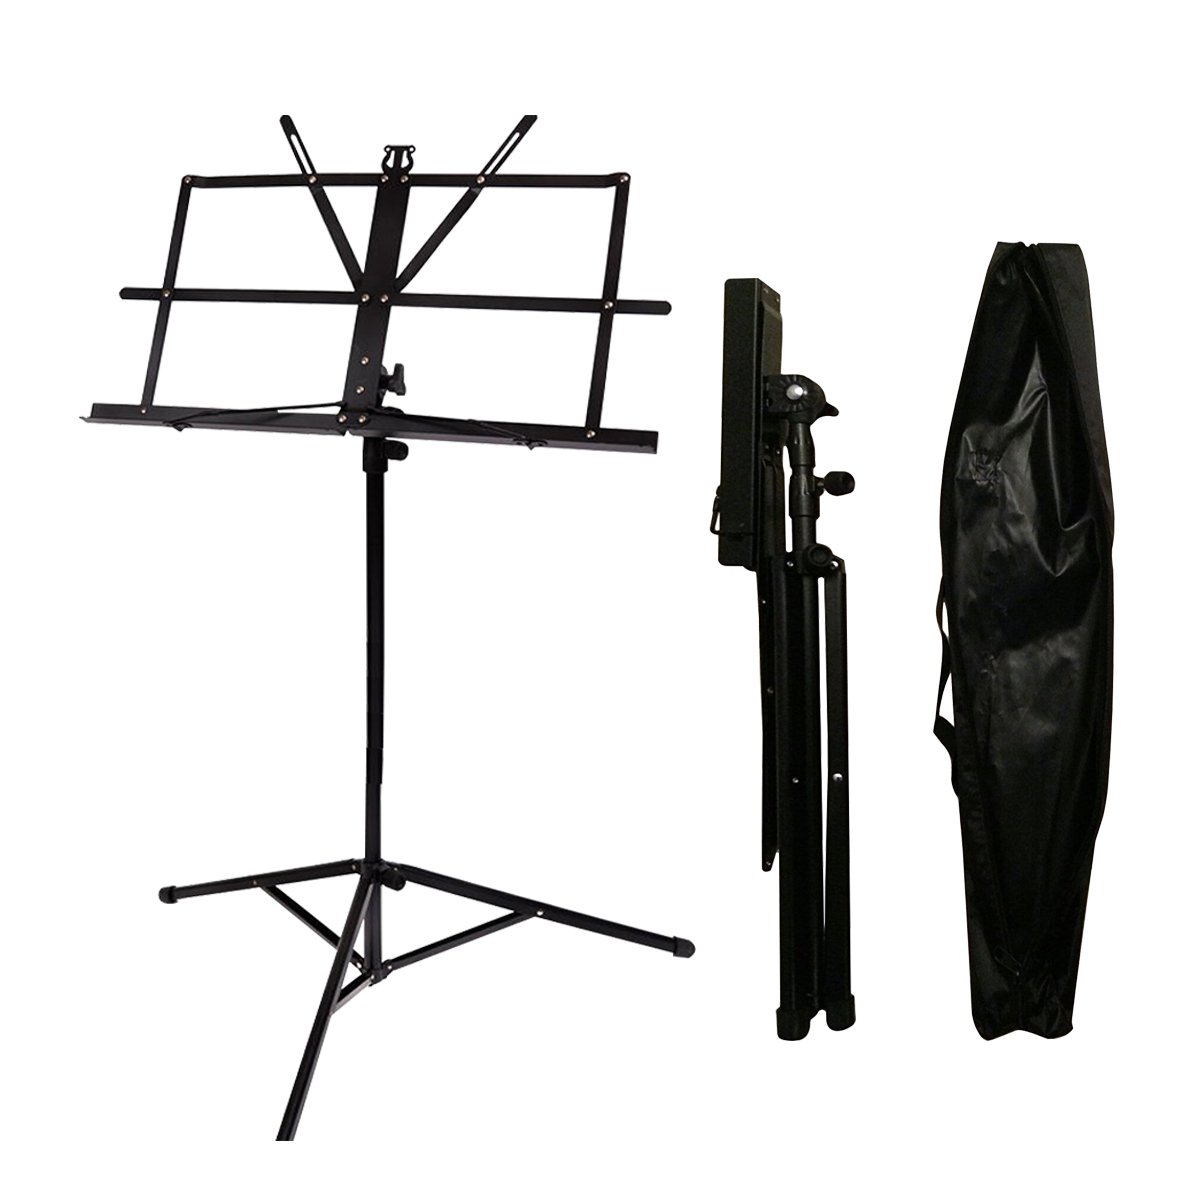 Music Stand Audo Folding Music Stand With Music Book Clip And Carry Bag Black (1Pack) by Audo (Image #5)